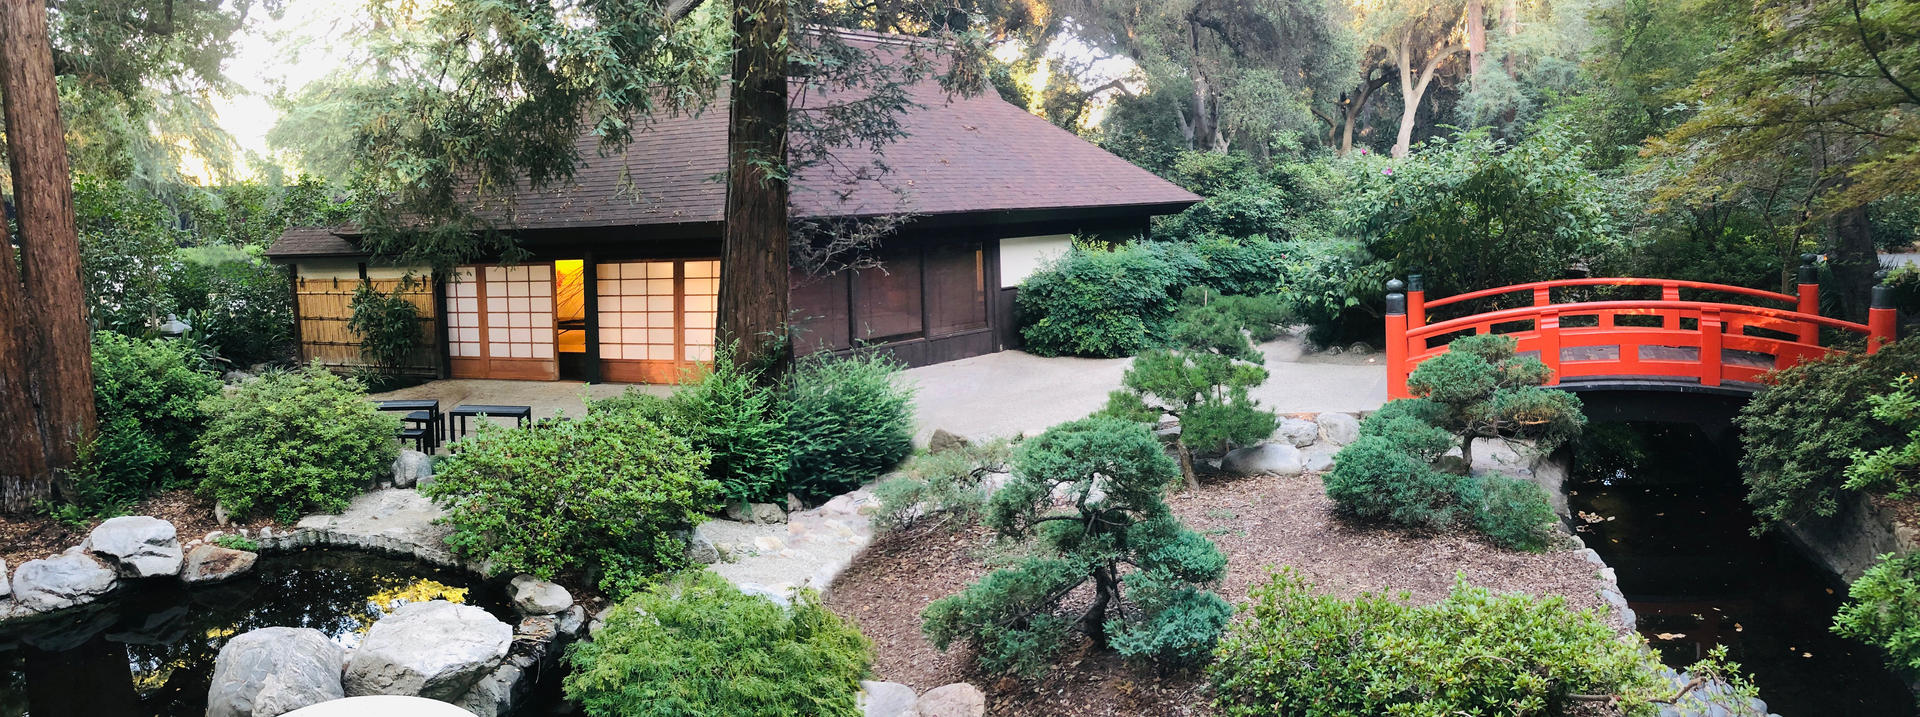 Japanese Garden Tea House and Bridge